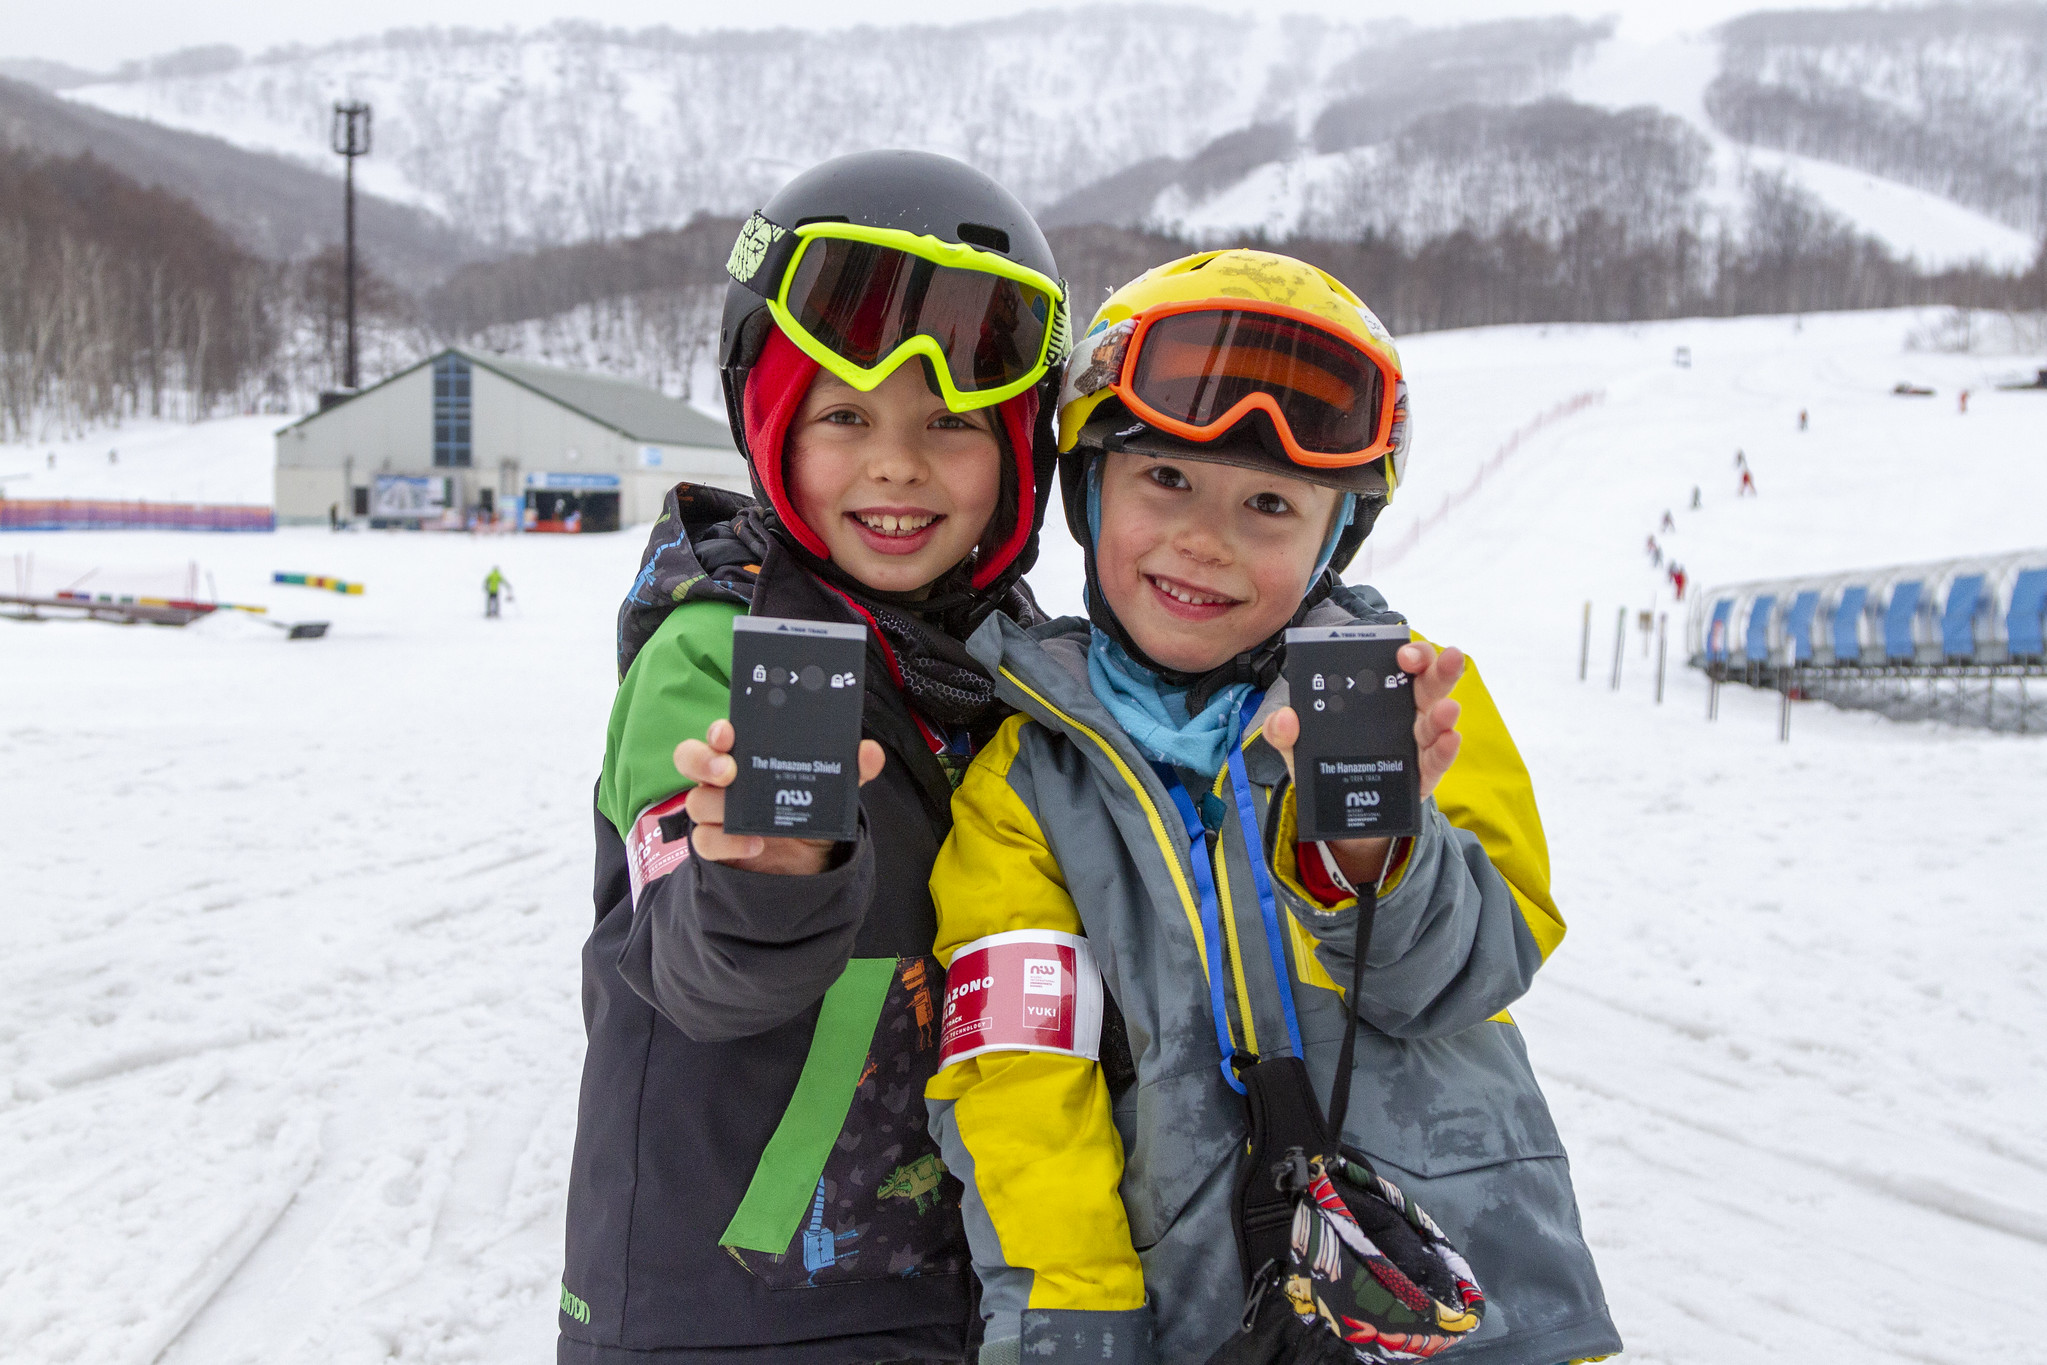 Two children skiing with NISS in Hanazono Resort, Niseko with new Hanazono Shield GPS Tracking Technology.